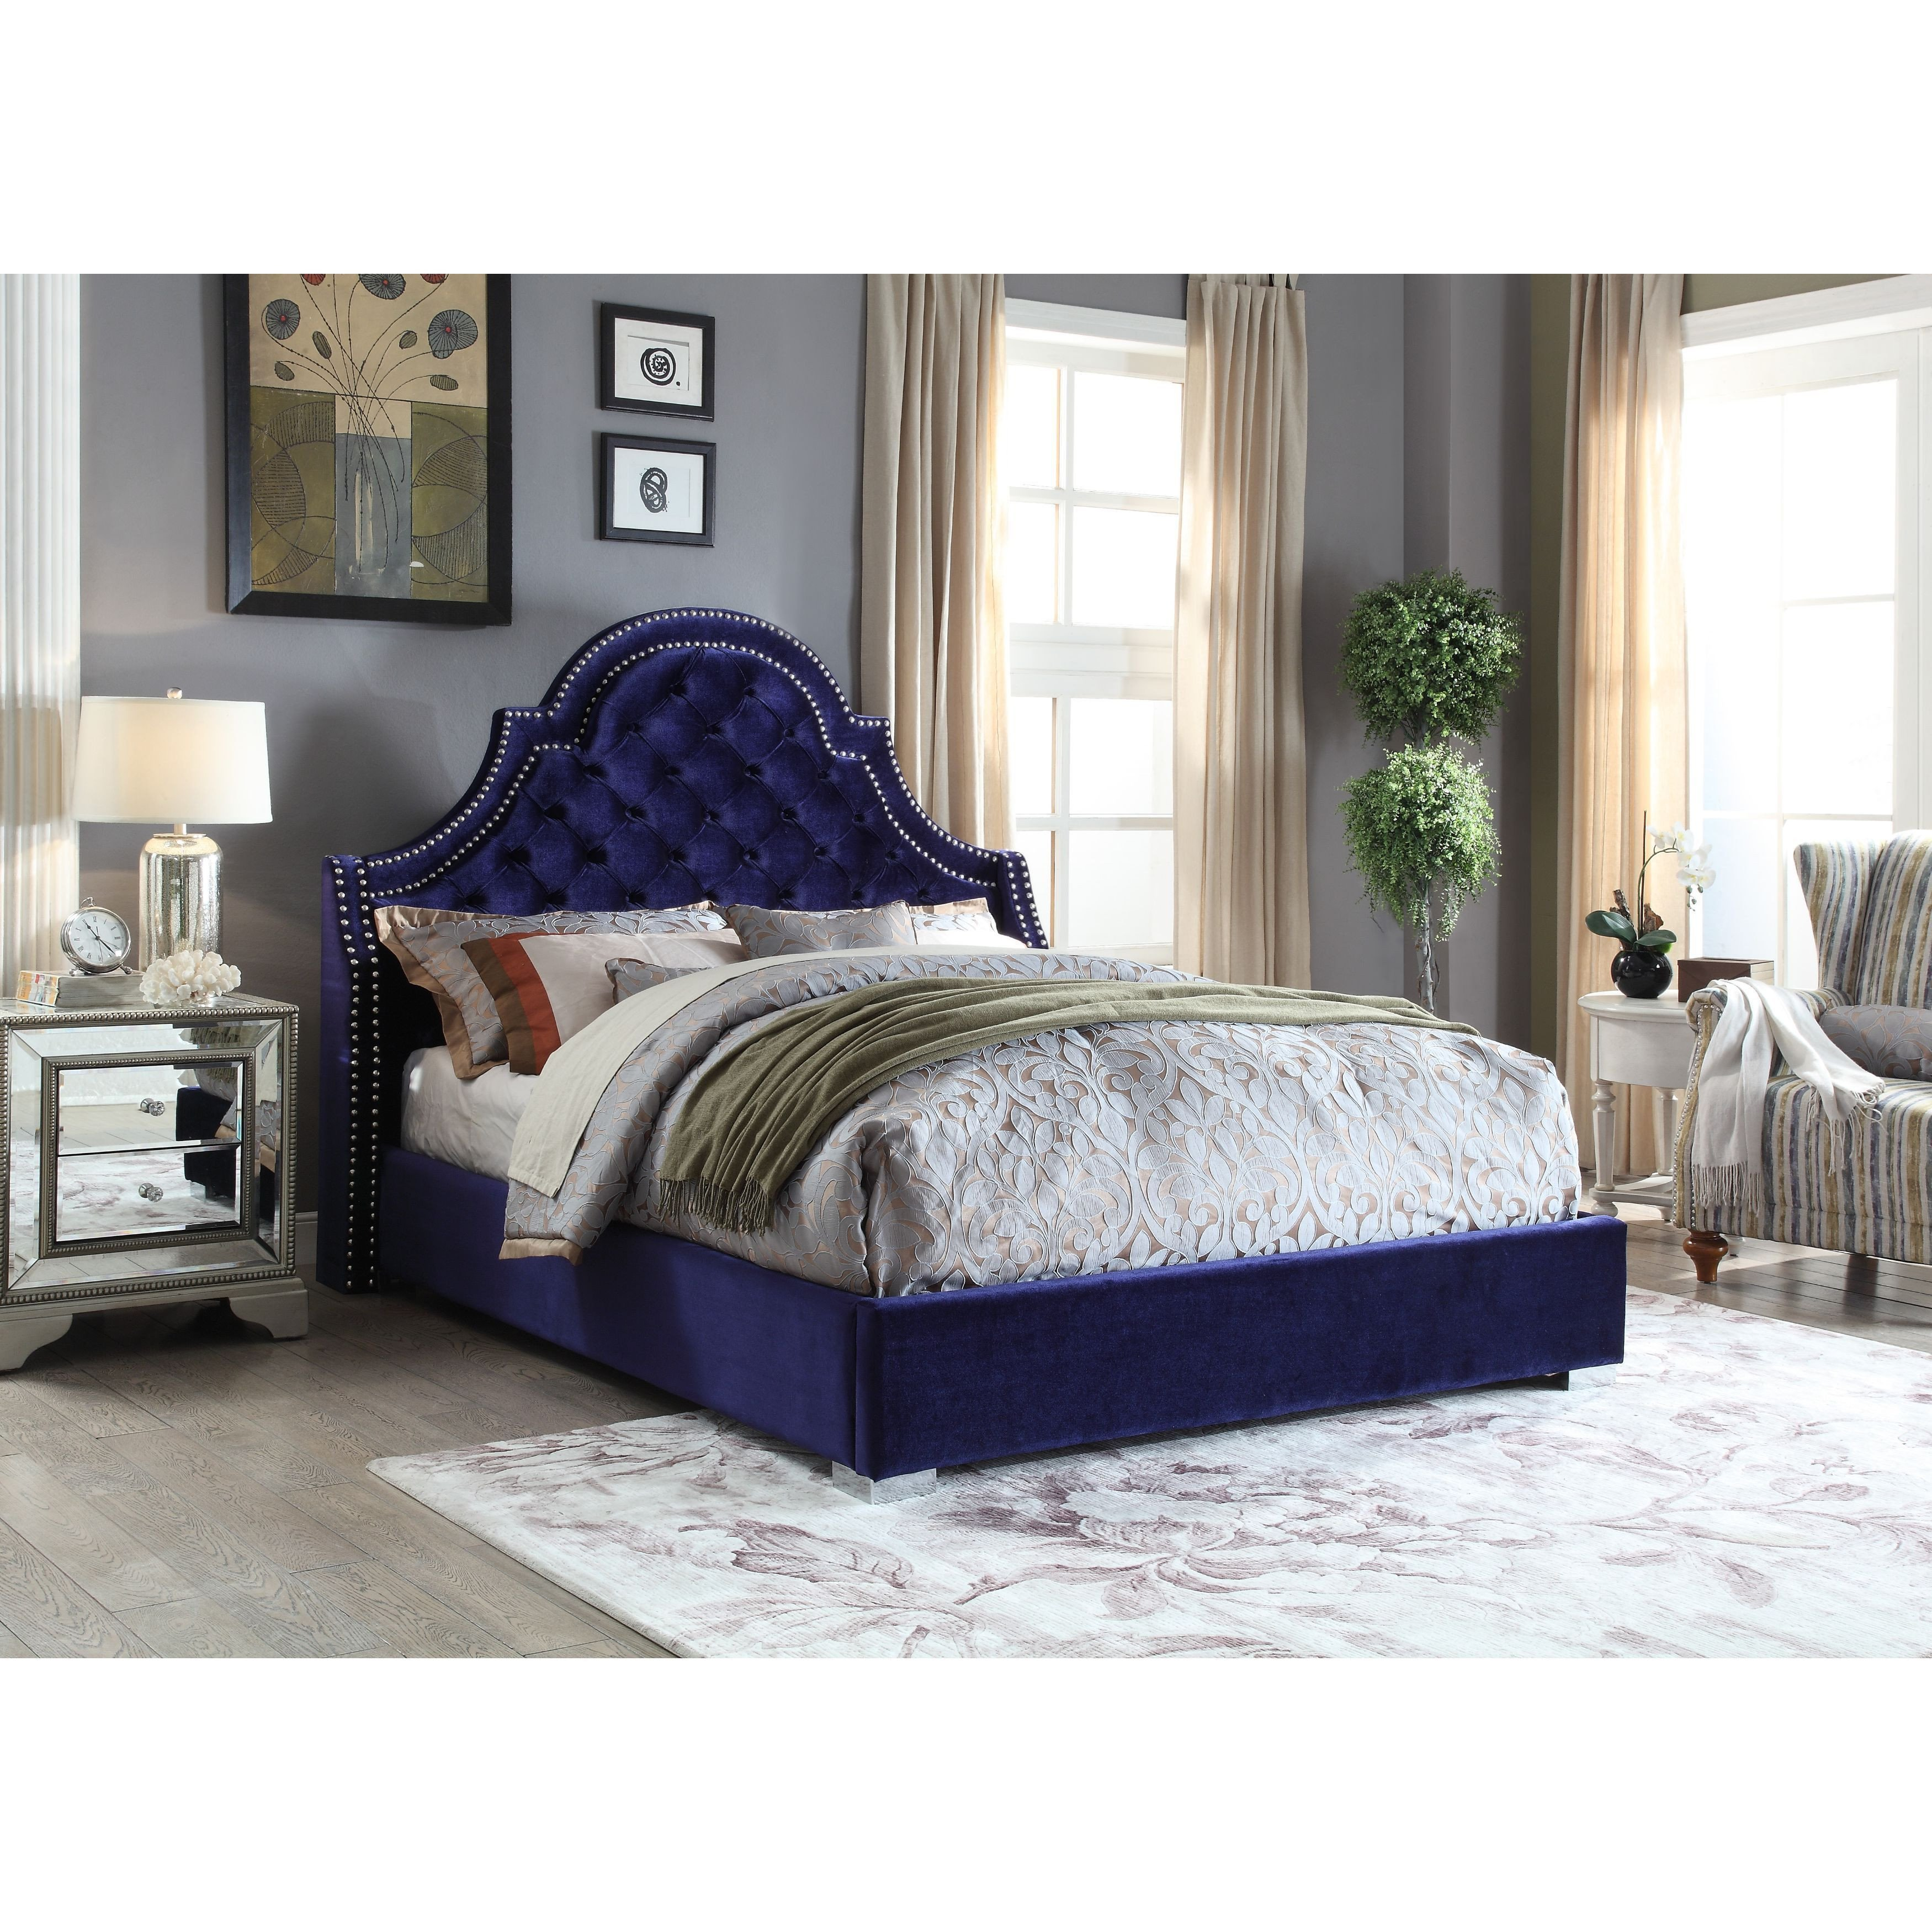 Cheap Bedroom Decor Online Shopping Lovely Line Shopping Bedding Furniture Electronics Jewelry